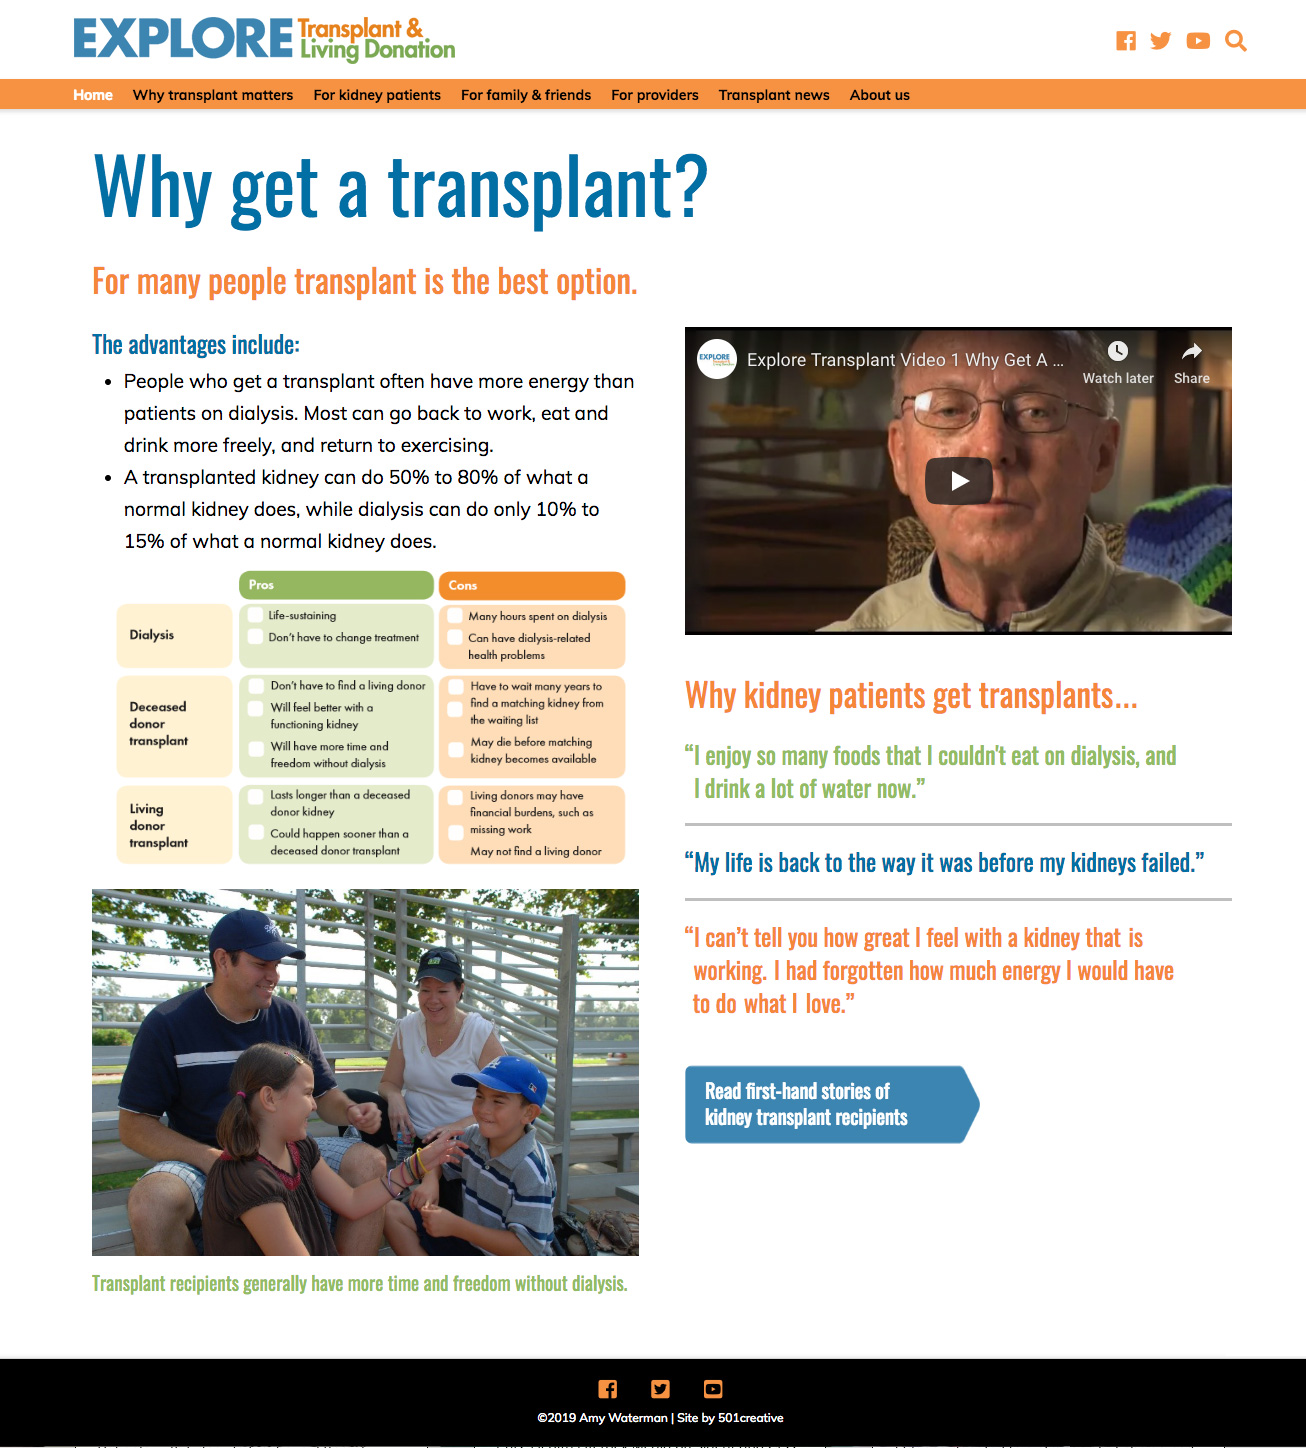 sample interior page of the Explore Transplant website